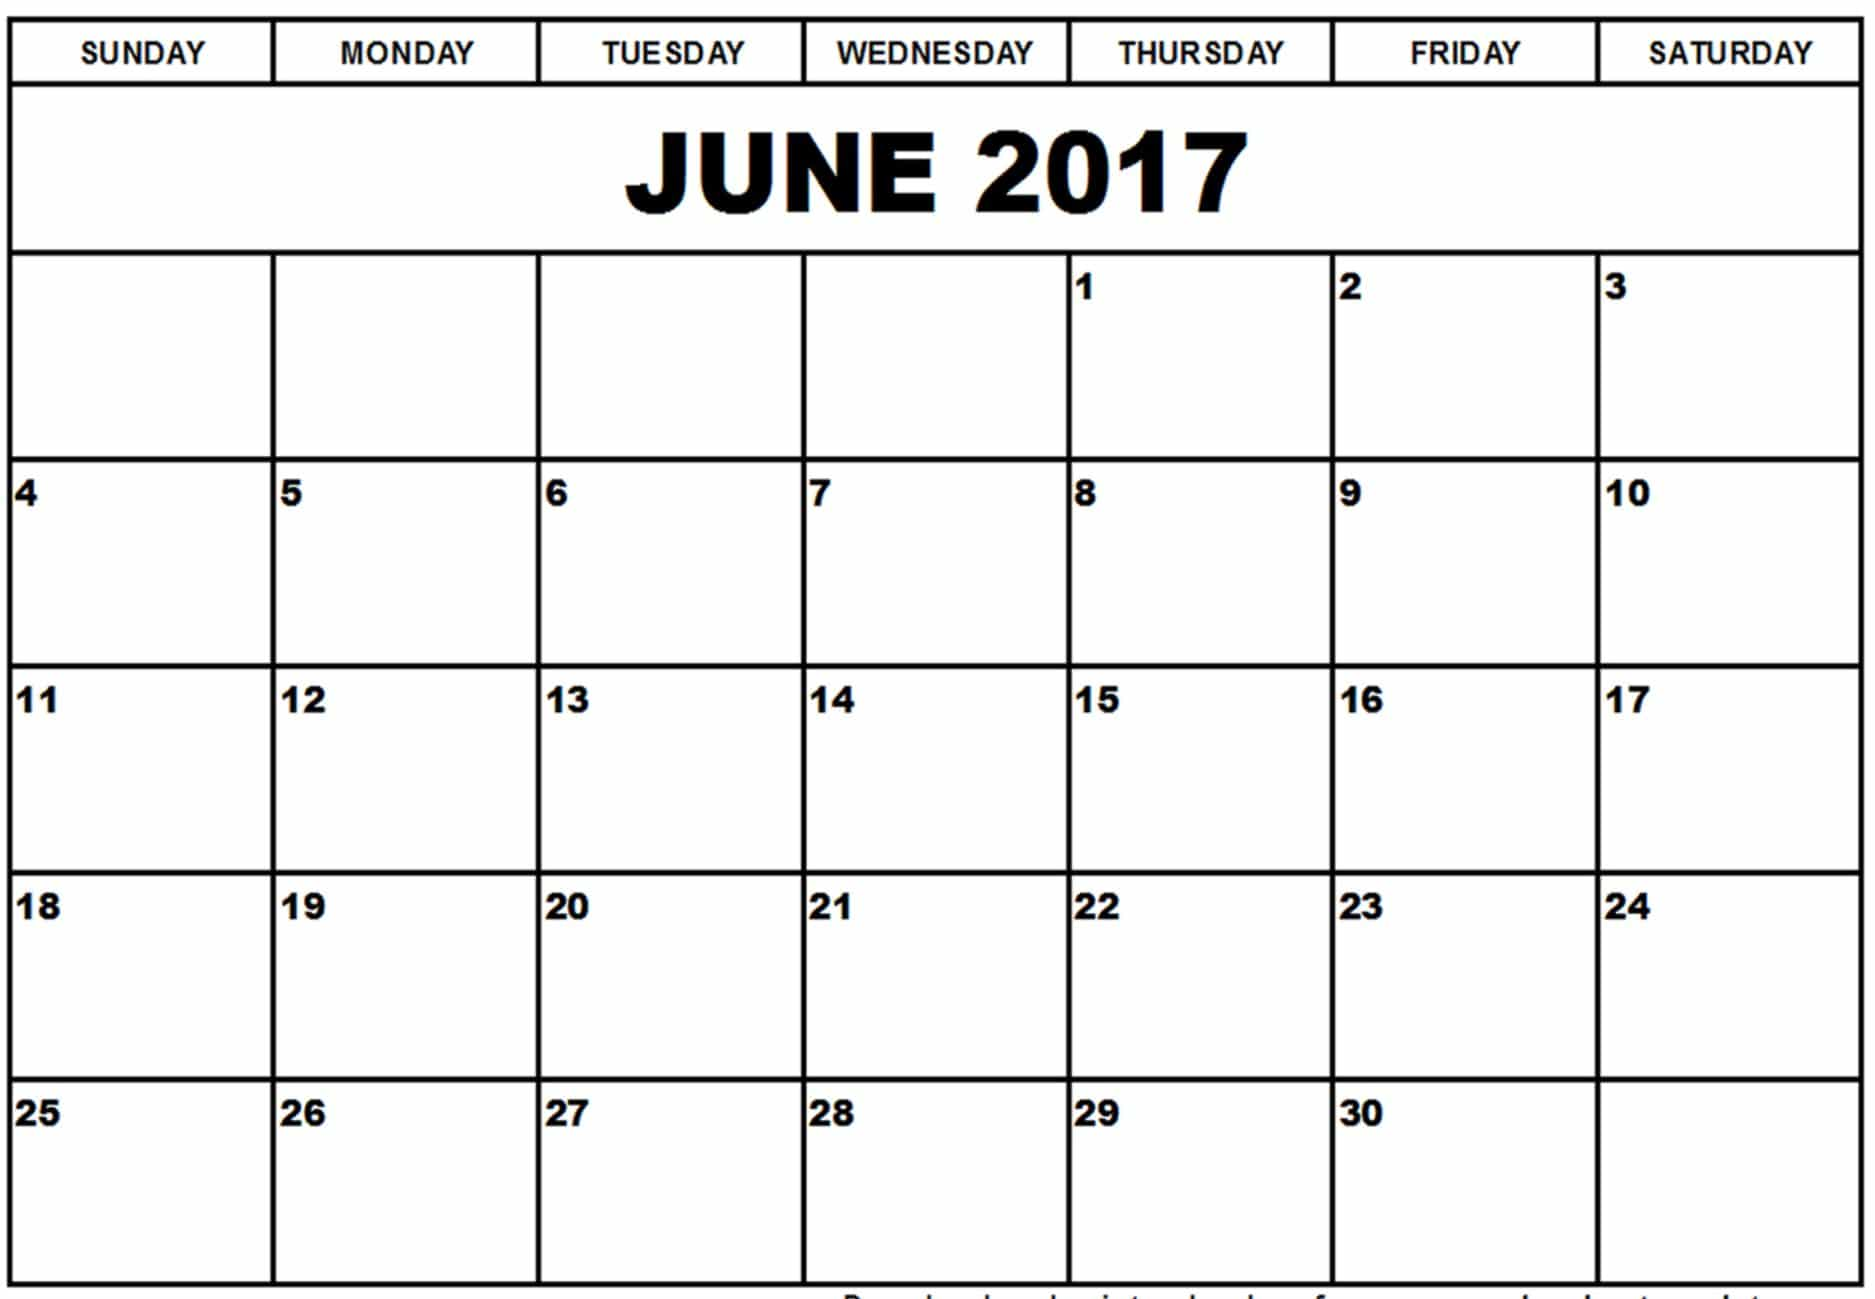 Monthly Calendar June 2017 Chart